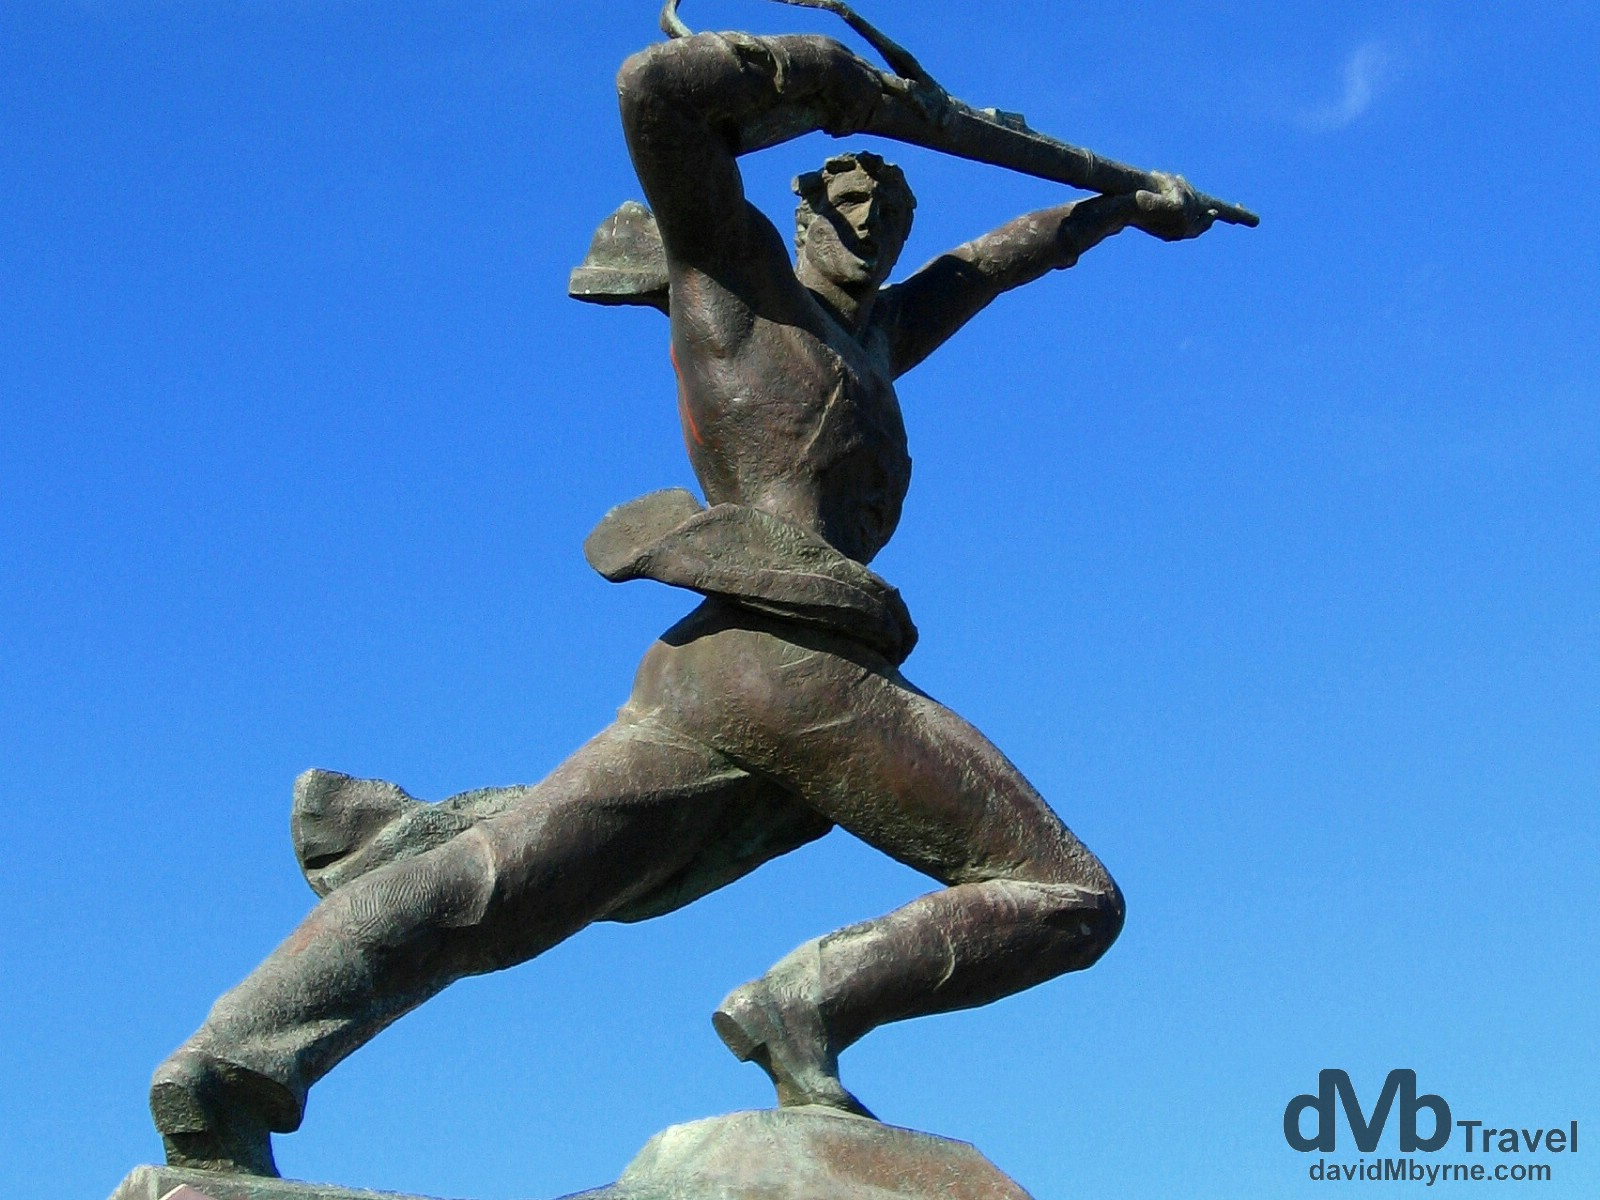 A Communist era statue along the waterfront in Durres, Albania. September 7th, 2007.